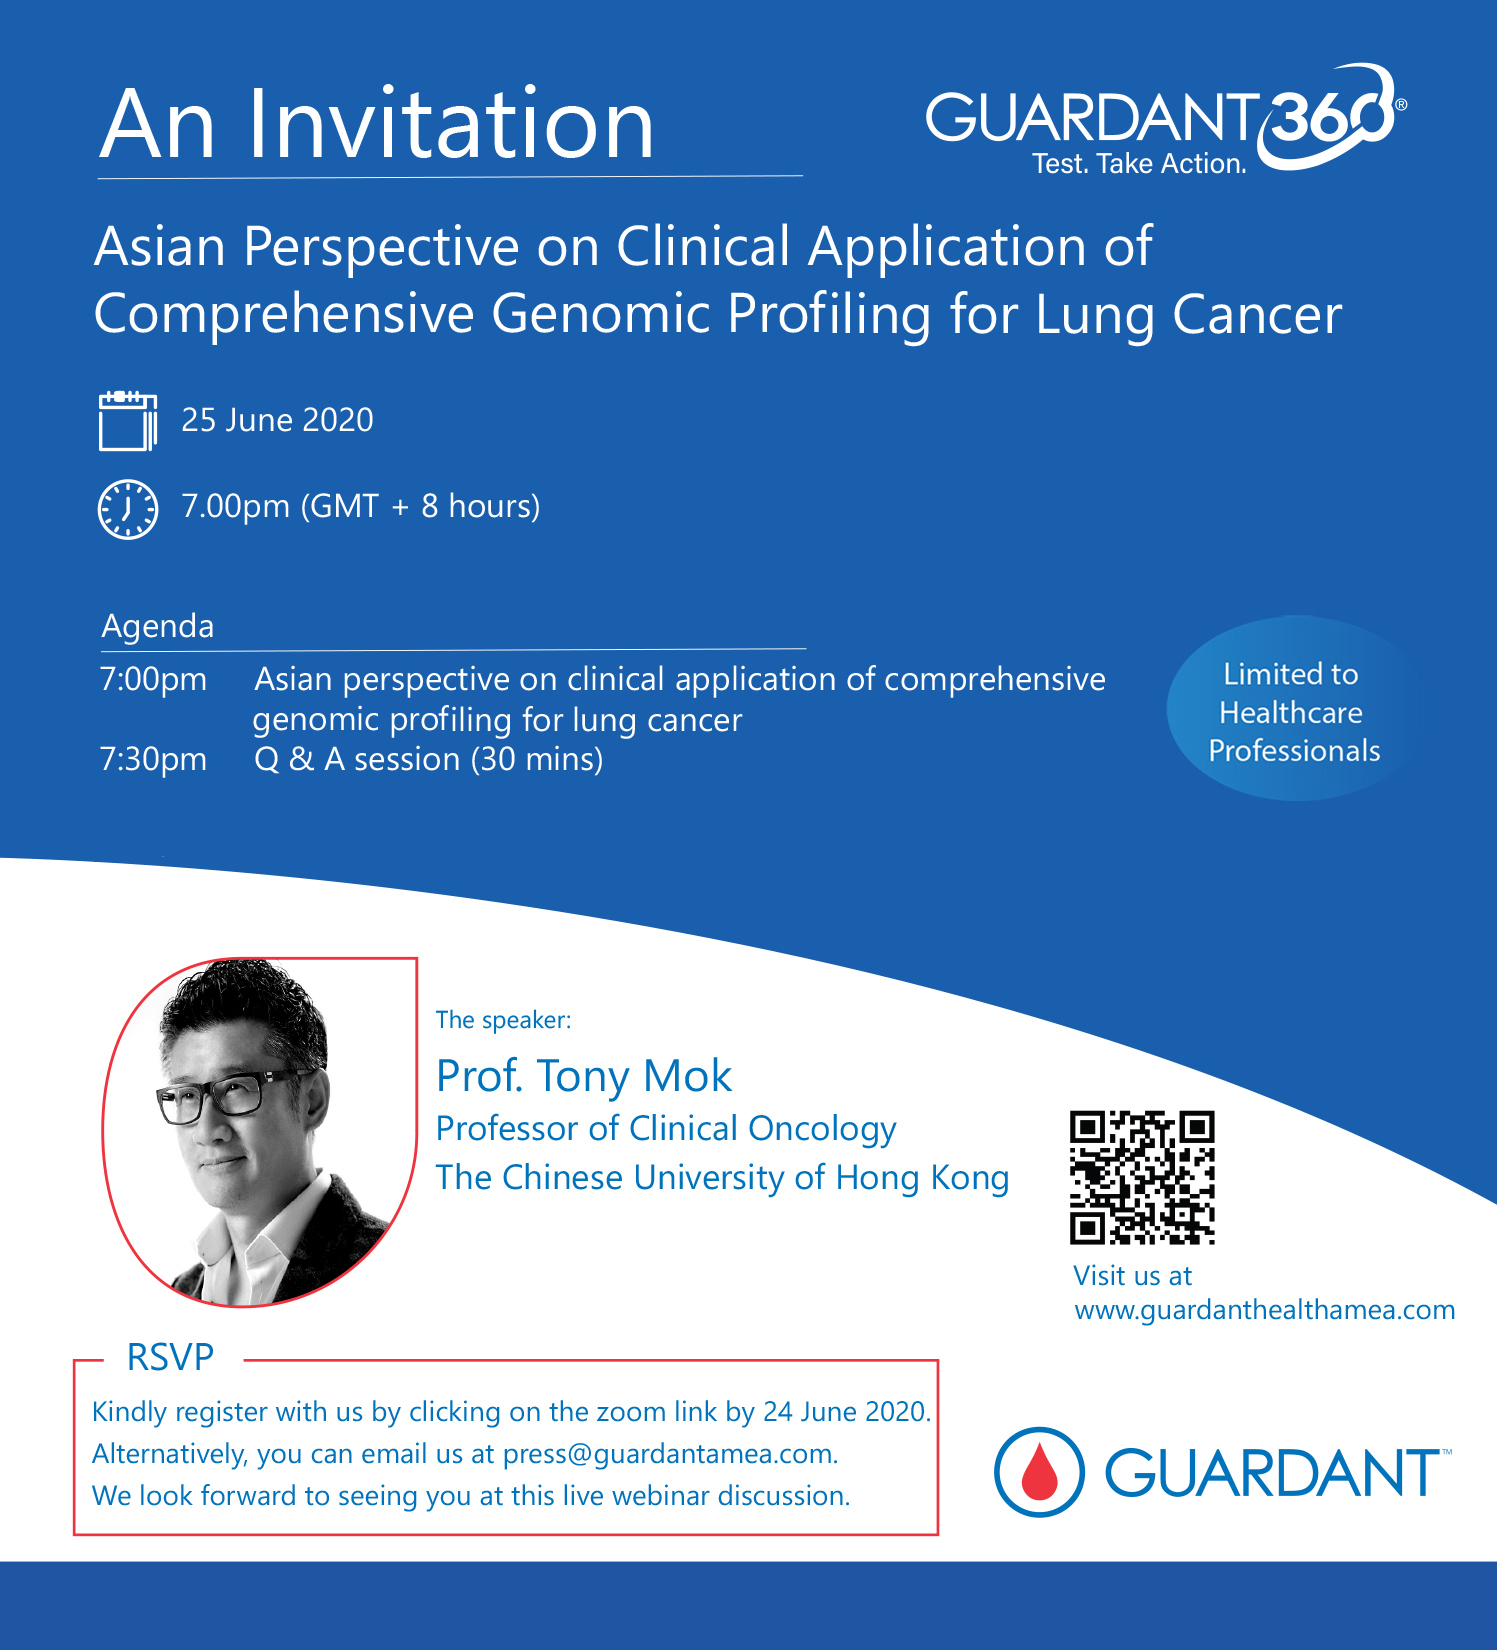 Join us on 25 June for a webinar discussion on the Asian Perspective on Clinical Application of Comprehensive Genomic Profiling for Lung Cancer